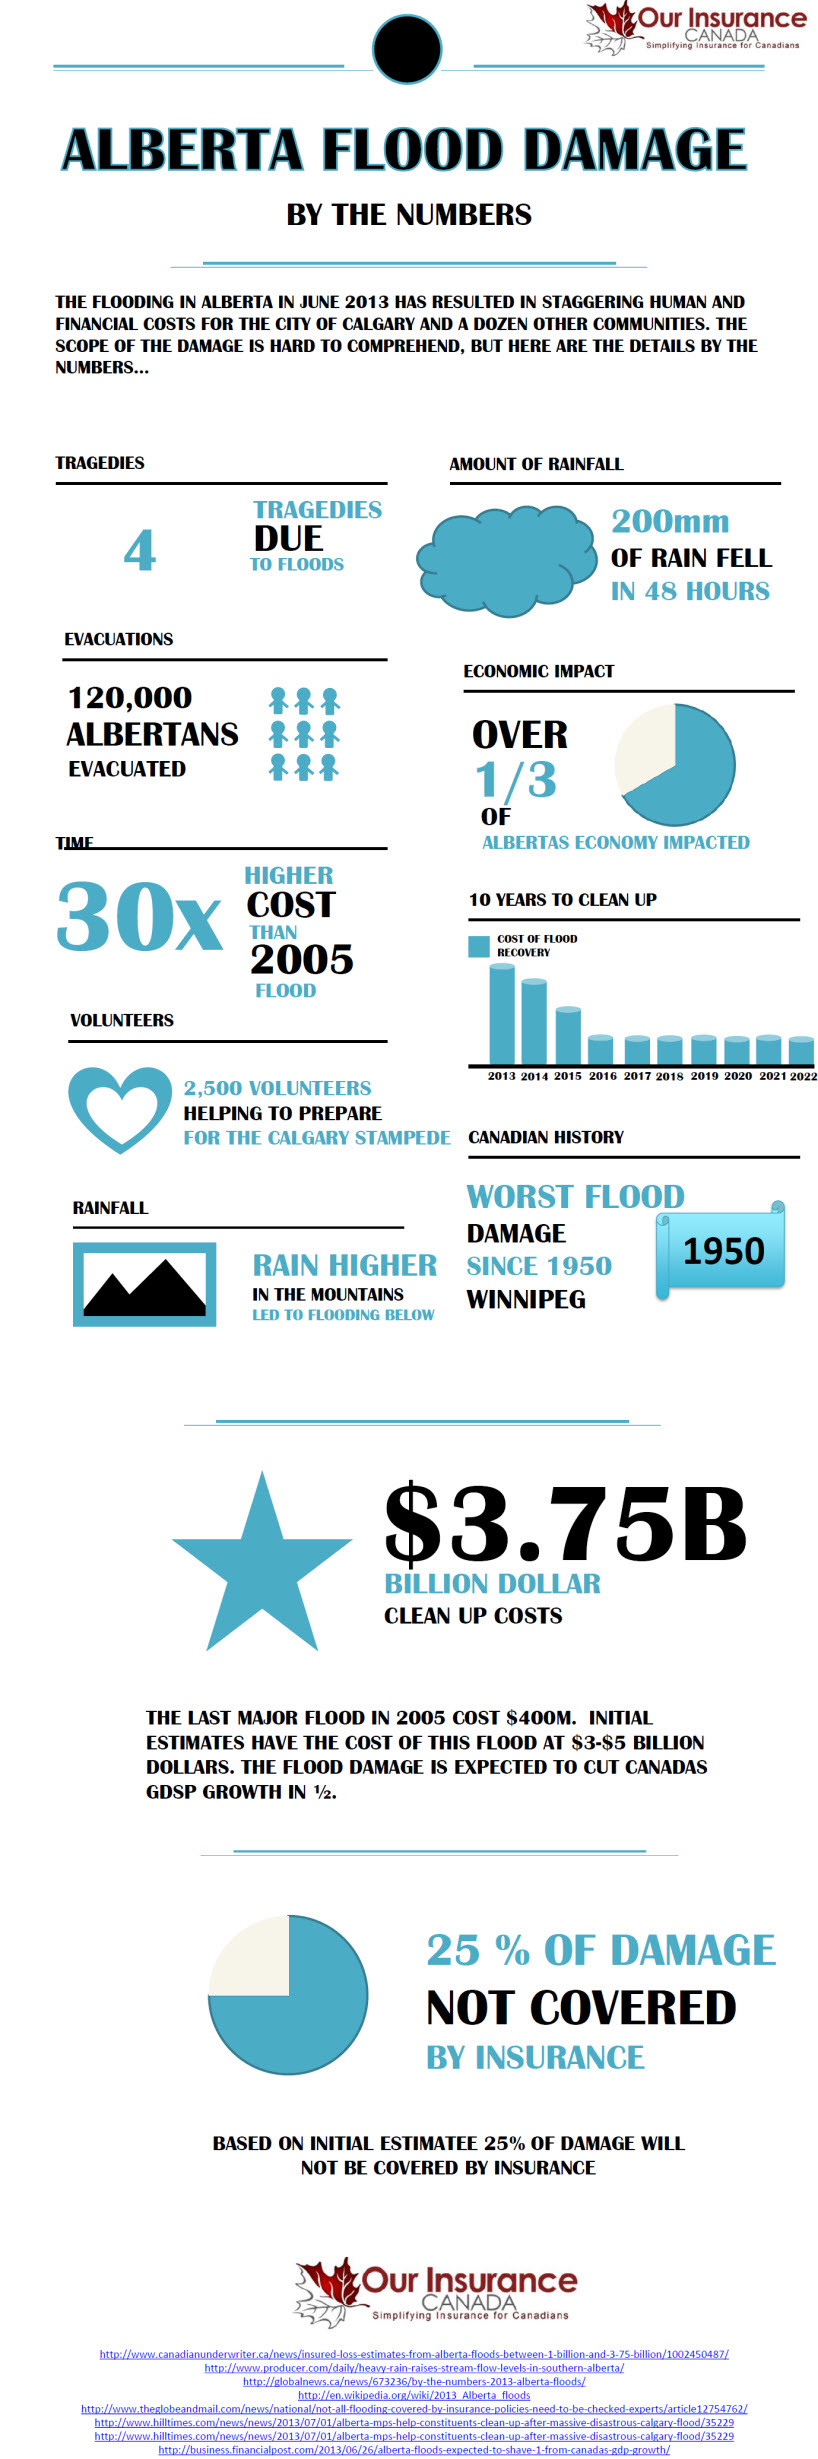 Alberta Flood Damage by the Numbers